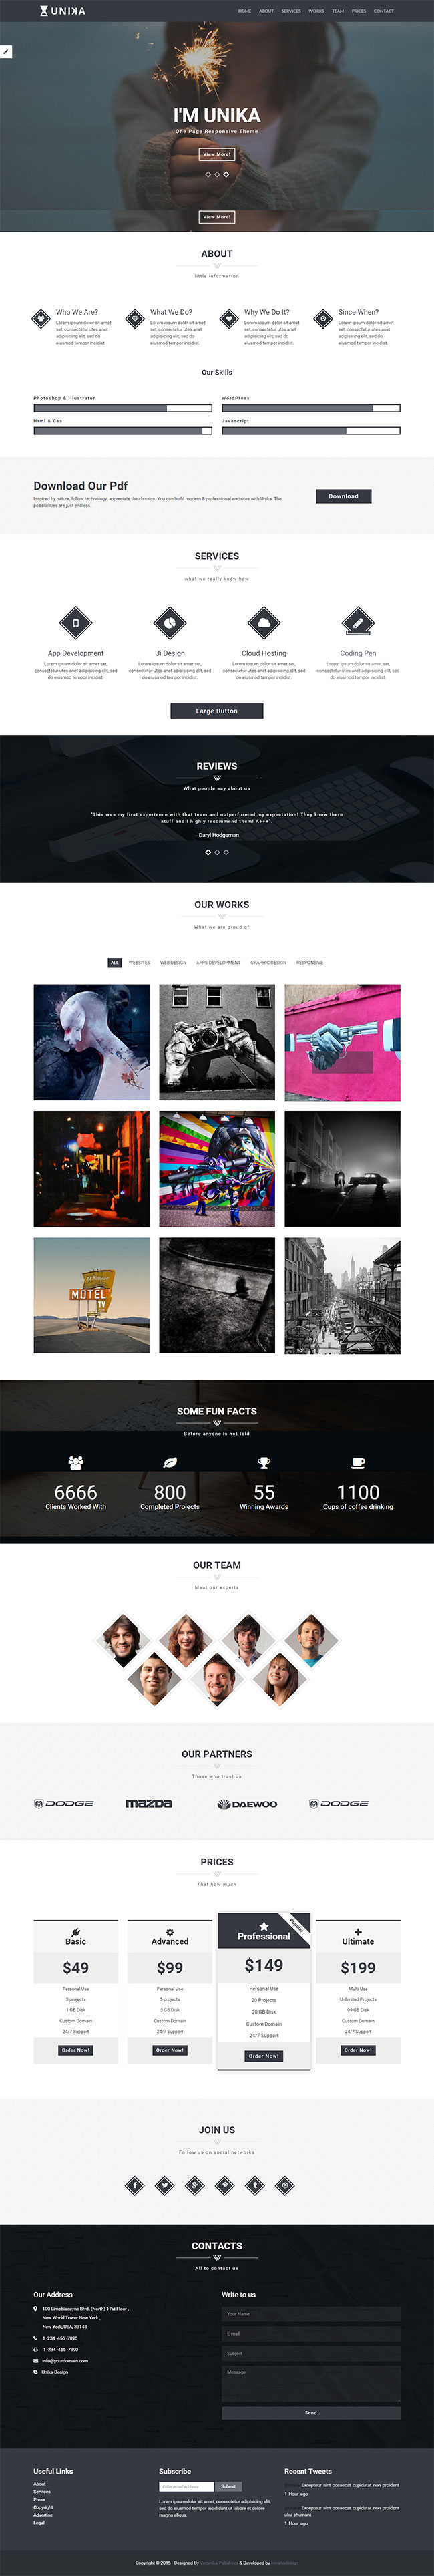 Html5 Css3 Templates | Unika Free HTML5 CSS3 One Page HTML5 Template